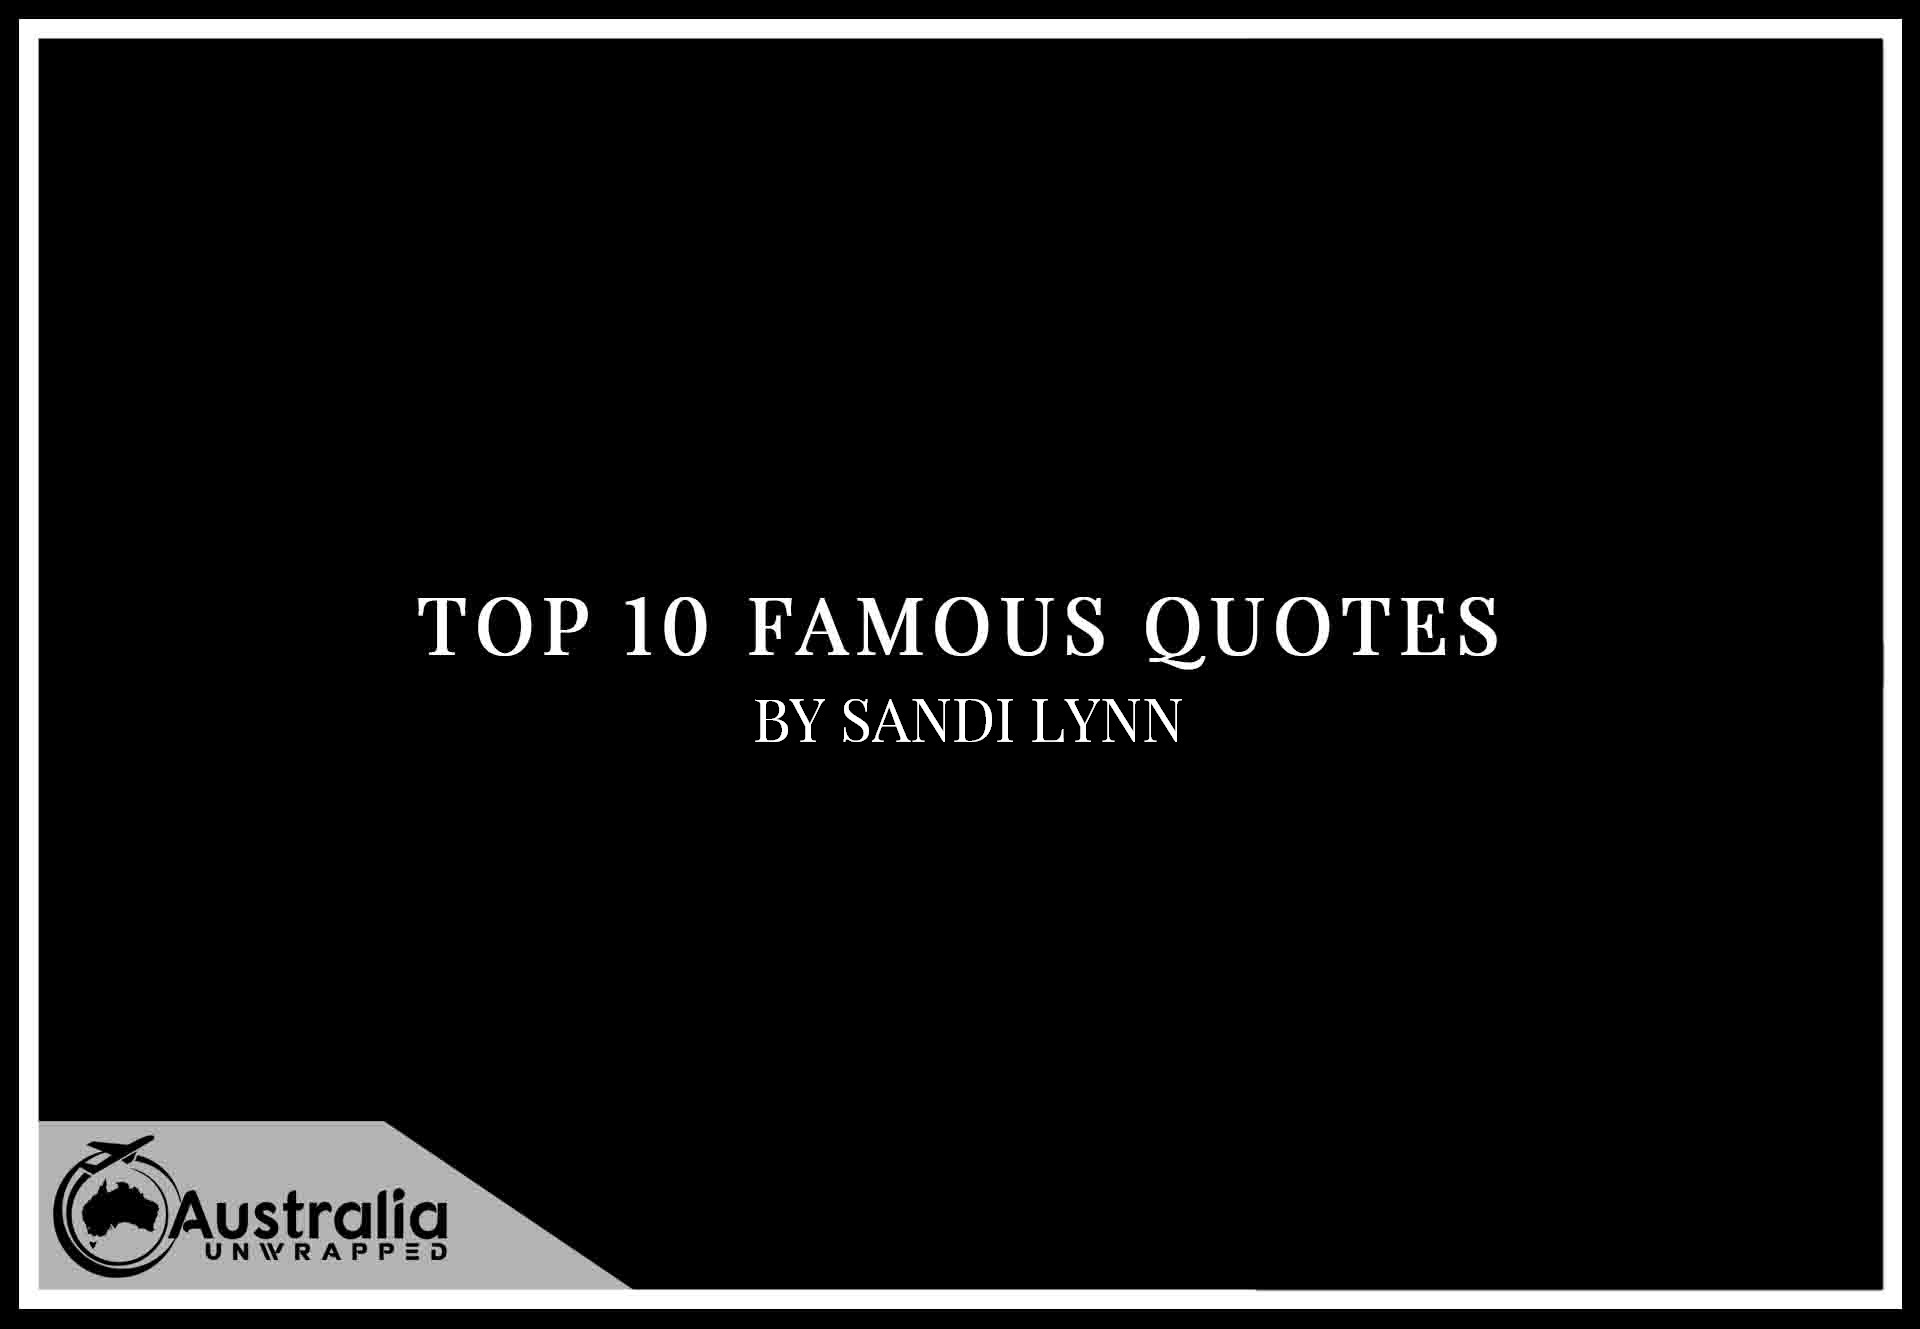 Top 10 Famous Quotes by Author Sandi Lynn